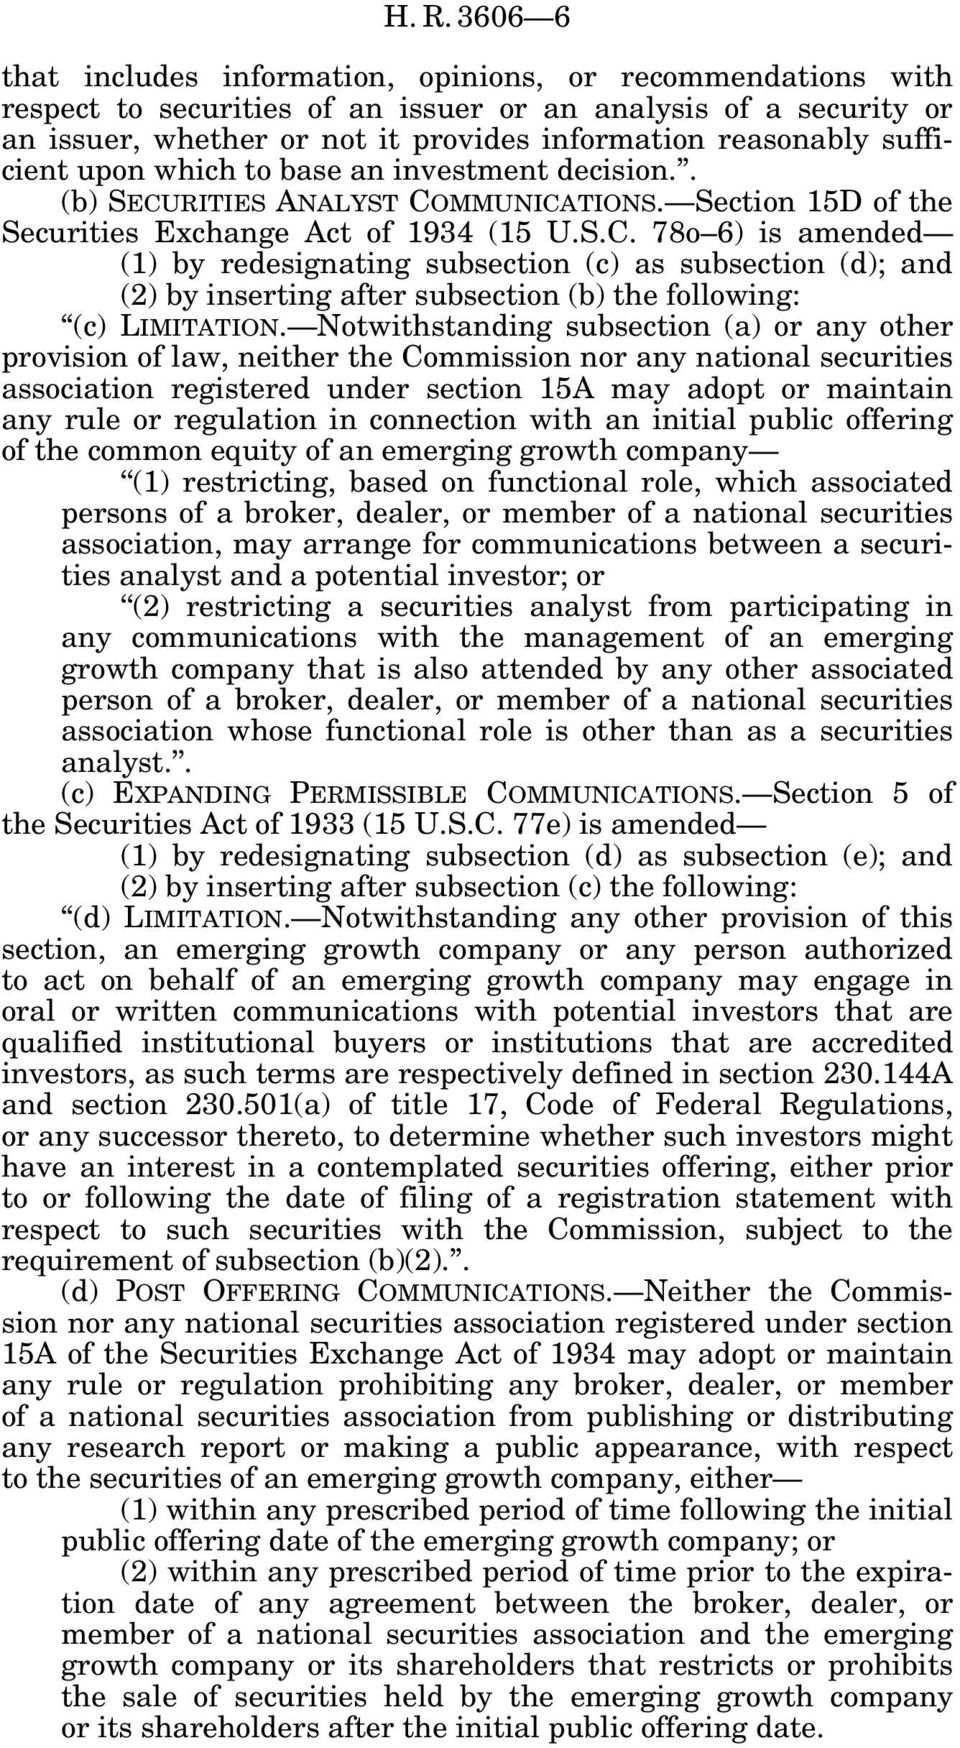 RITIES ANALYST COMMUNICATIONS. Section 15D of the Securities Exchange Act of 1934 (15 U.S.C. 78o 6) is amended (1) by redesignating subsection (c) as subsection (d); and (2) by inserting after subsection (b) the following: (c) LIMITATION.